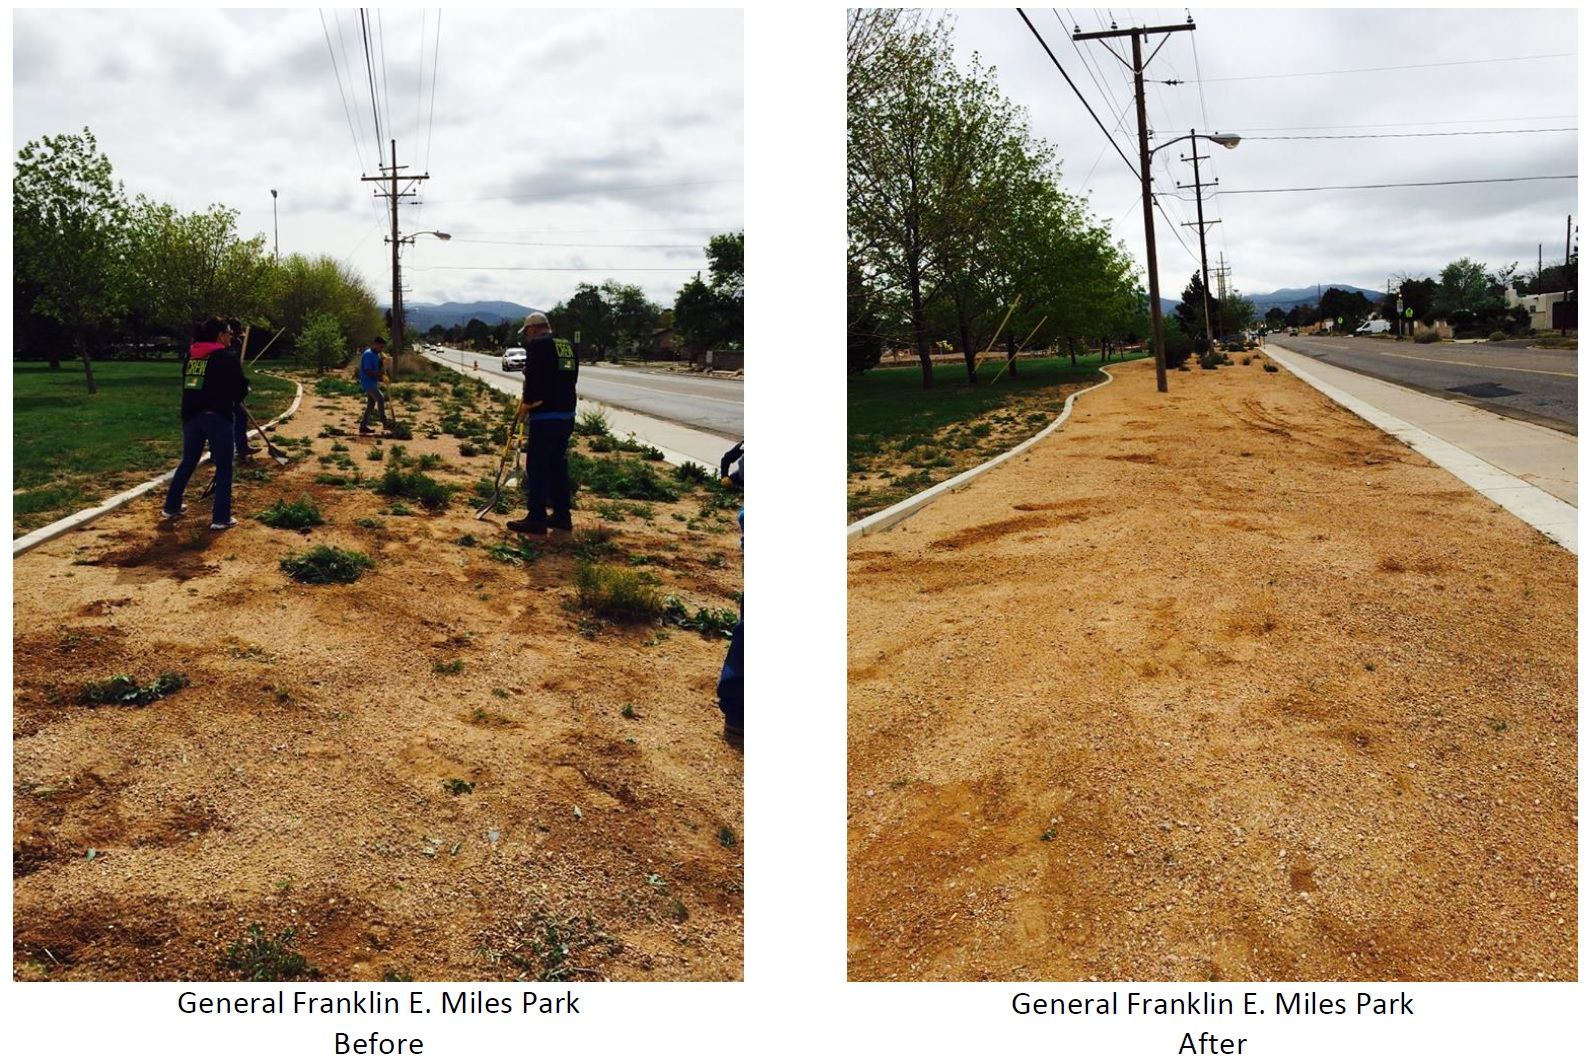 Before & After Photos of Franklin E. Miles Park